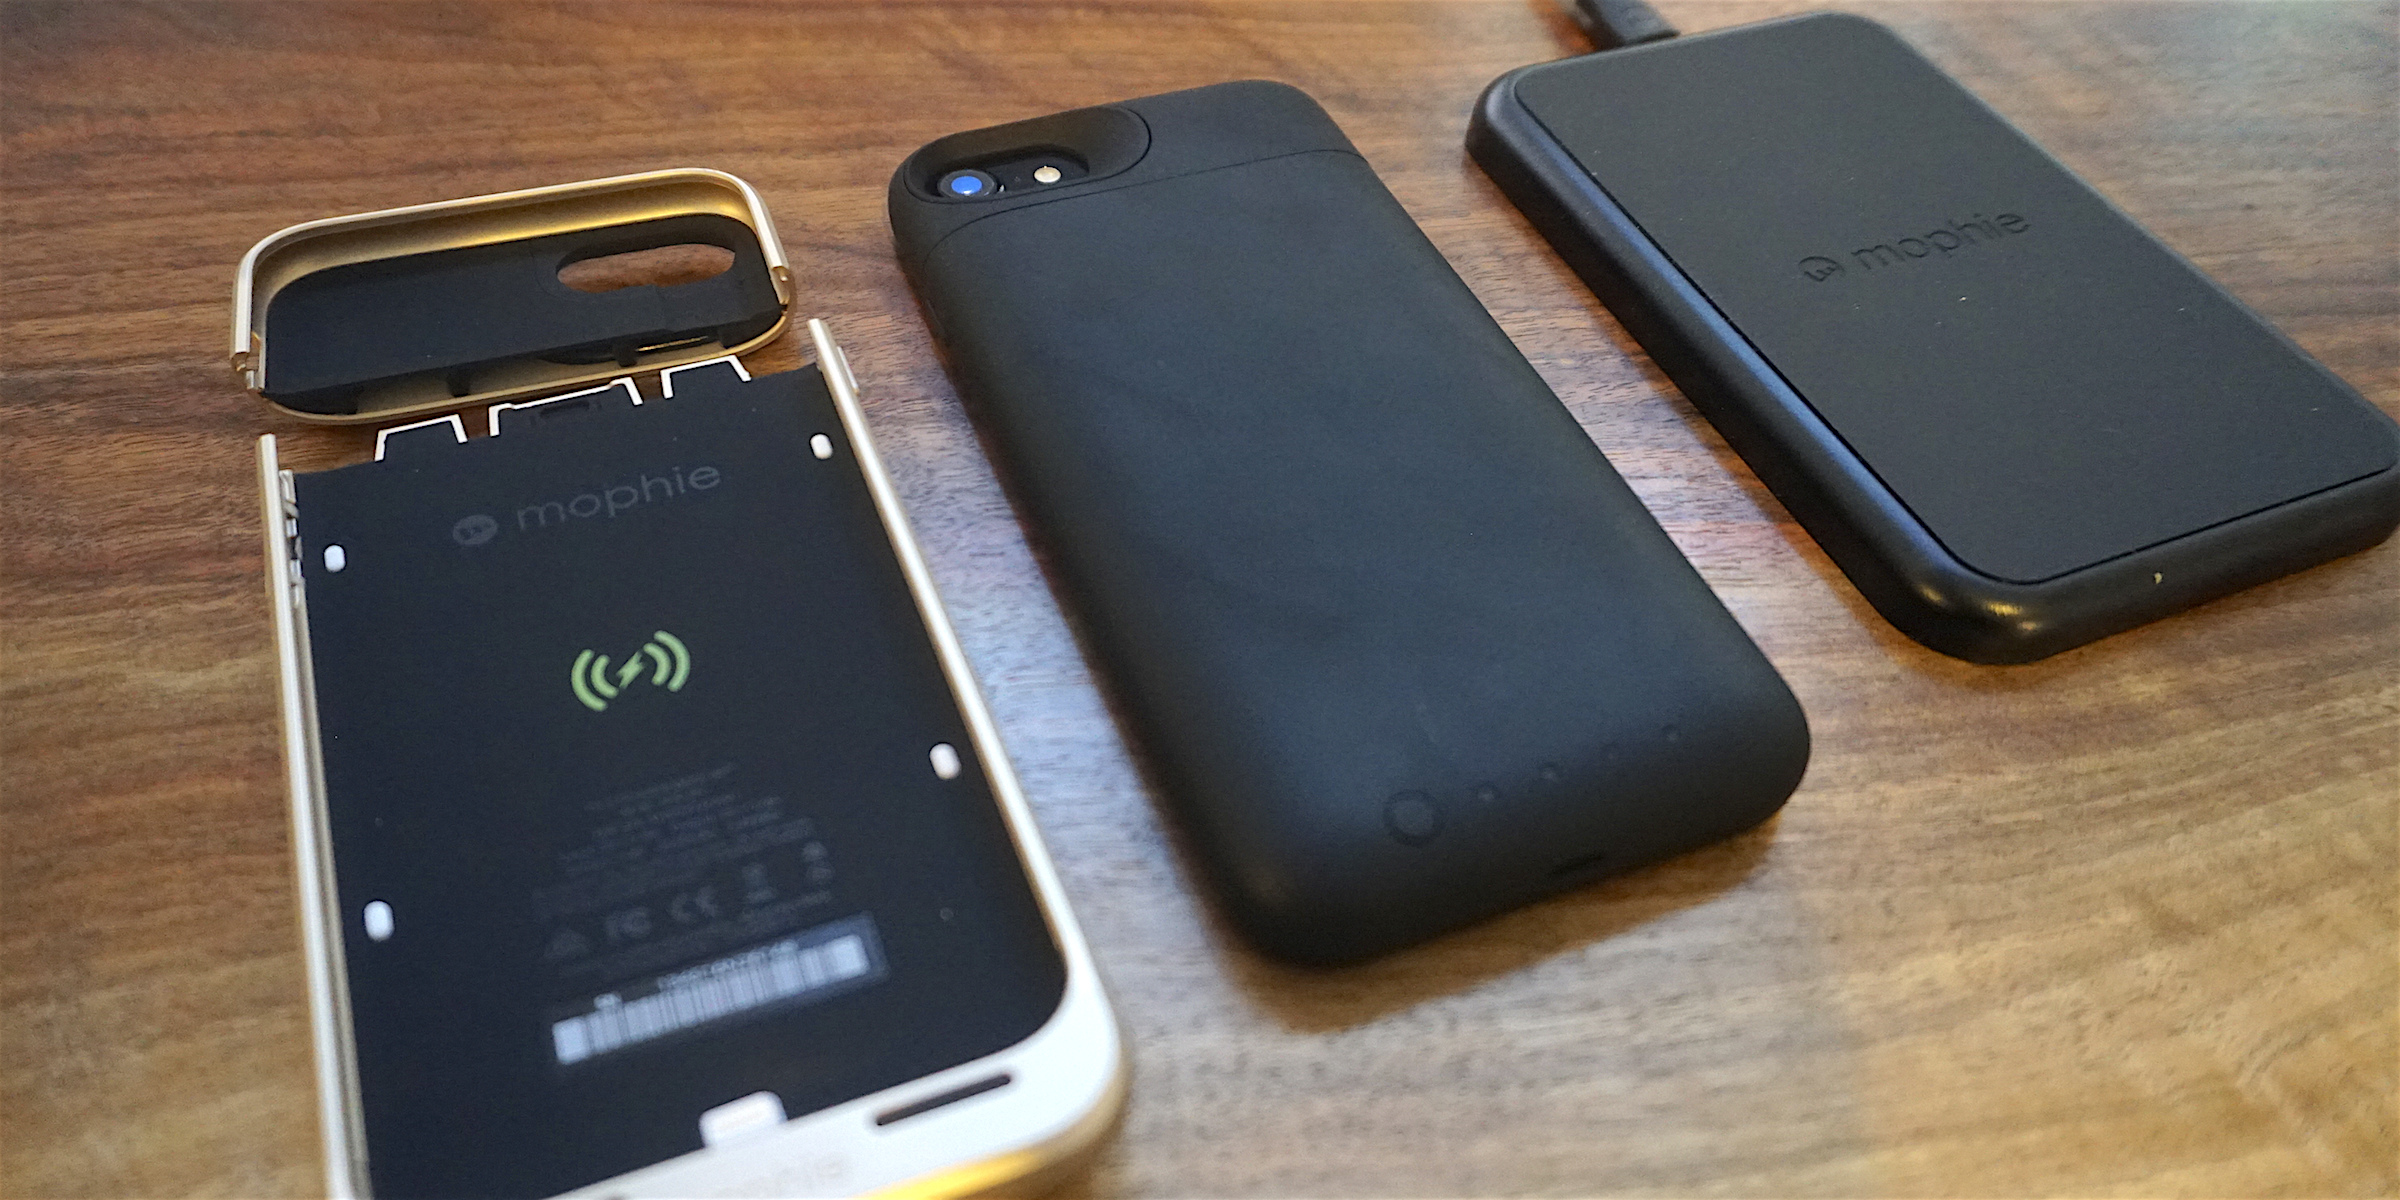 Review Mophie Juice Pack Air Battery Case For Iphone 7 W Qi Wireless Charging Base 9to5mac For $100, it's a great value. mophie juice pack air battery case for